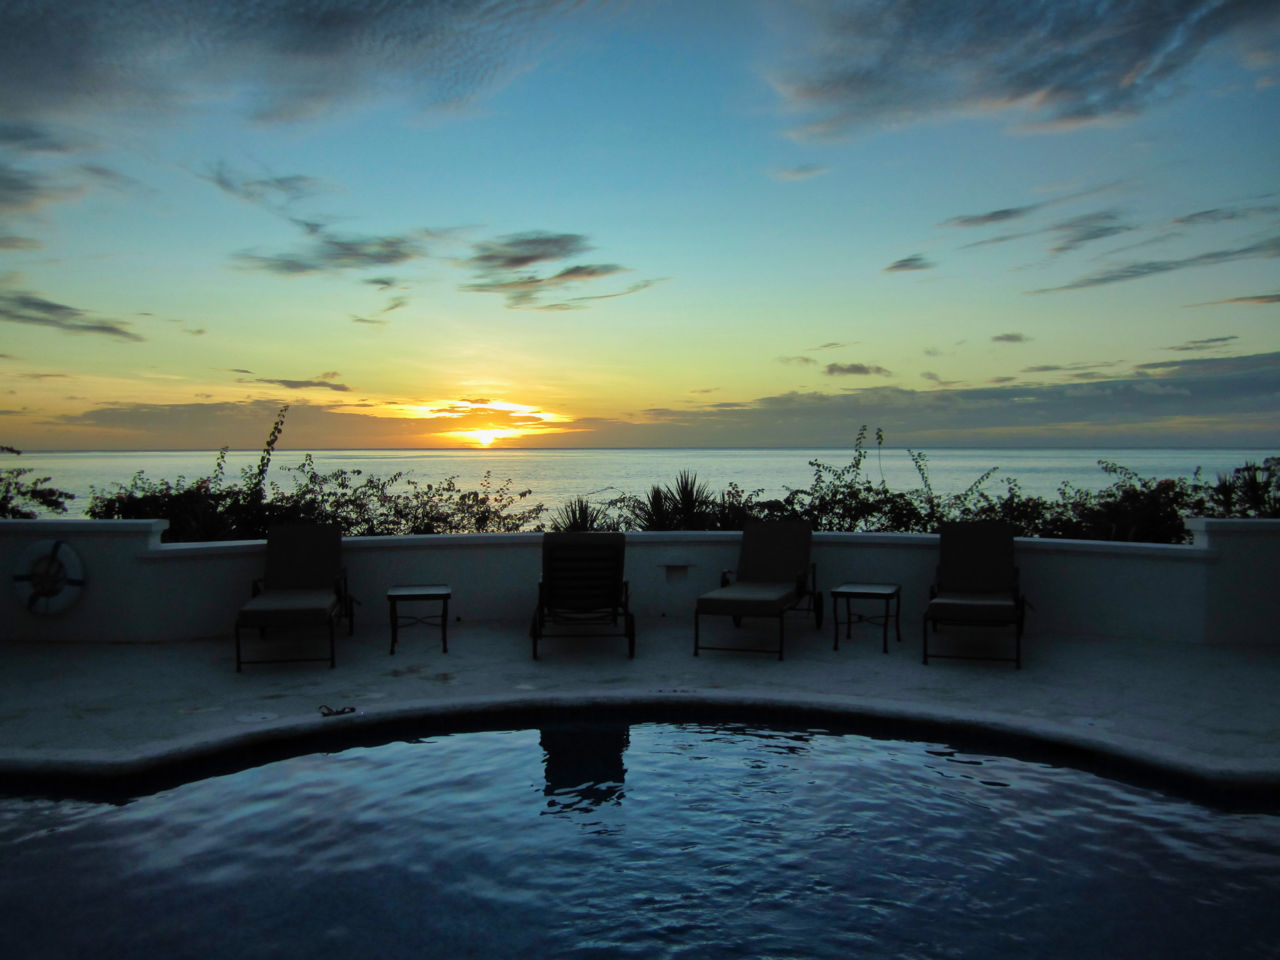 Sunset over the villa's pool